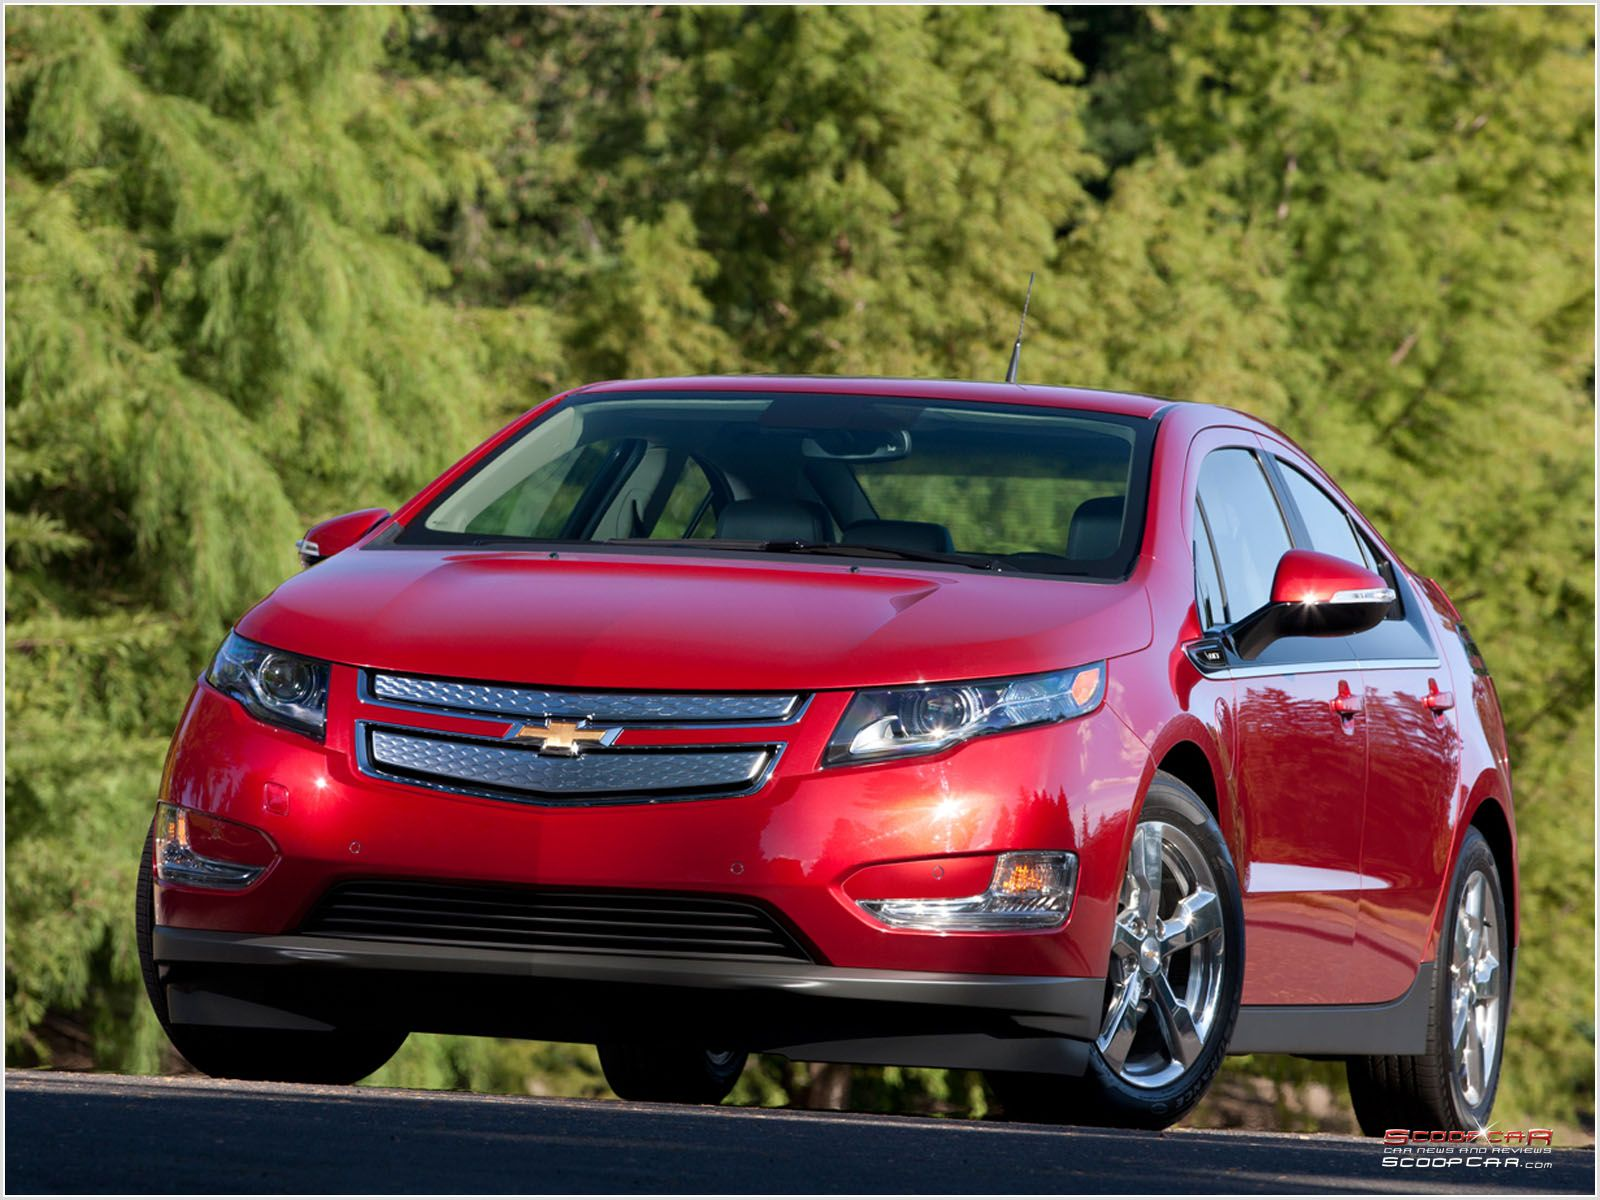 2013 Chevy Volt Chevrolet volt, Car chevrolet, Chevy dealers